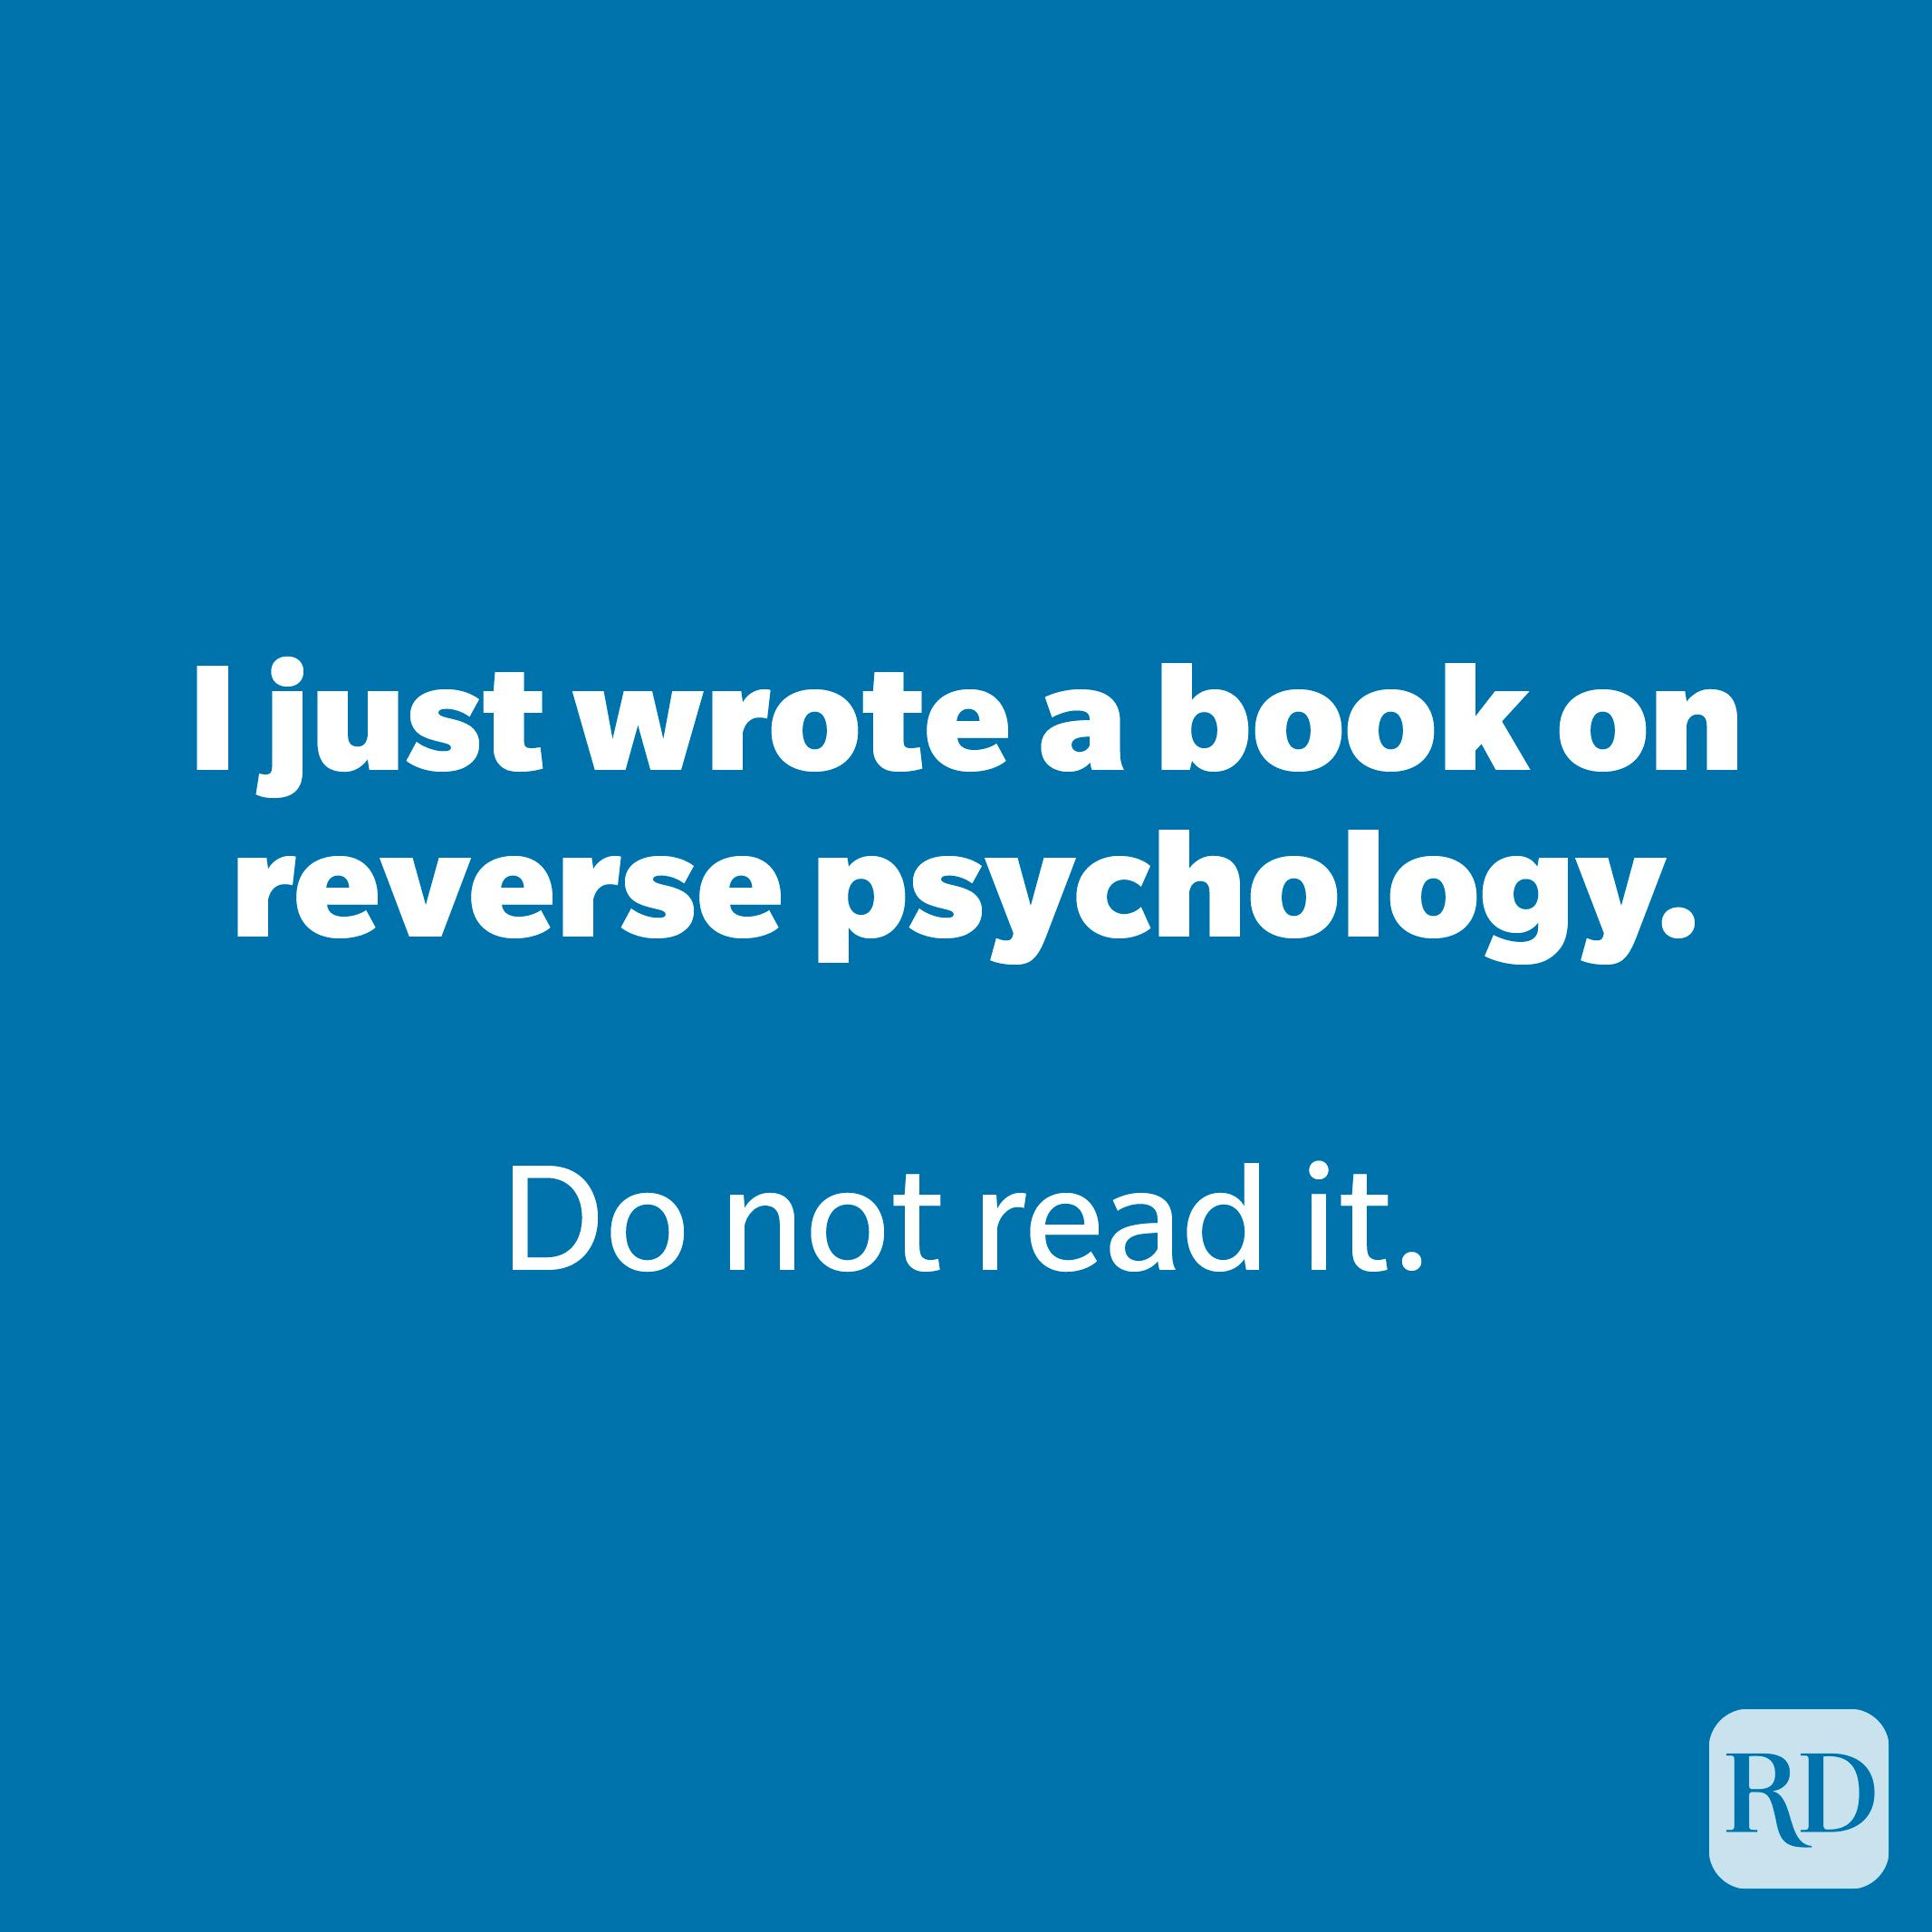 I just wrote a book on reverse psychology.